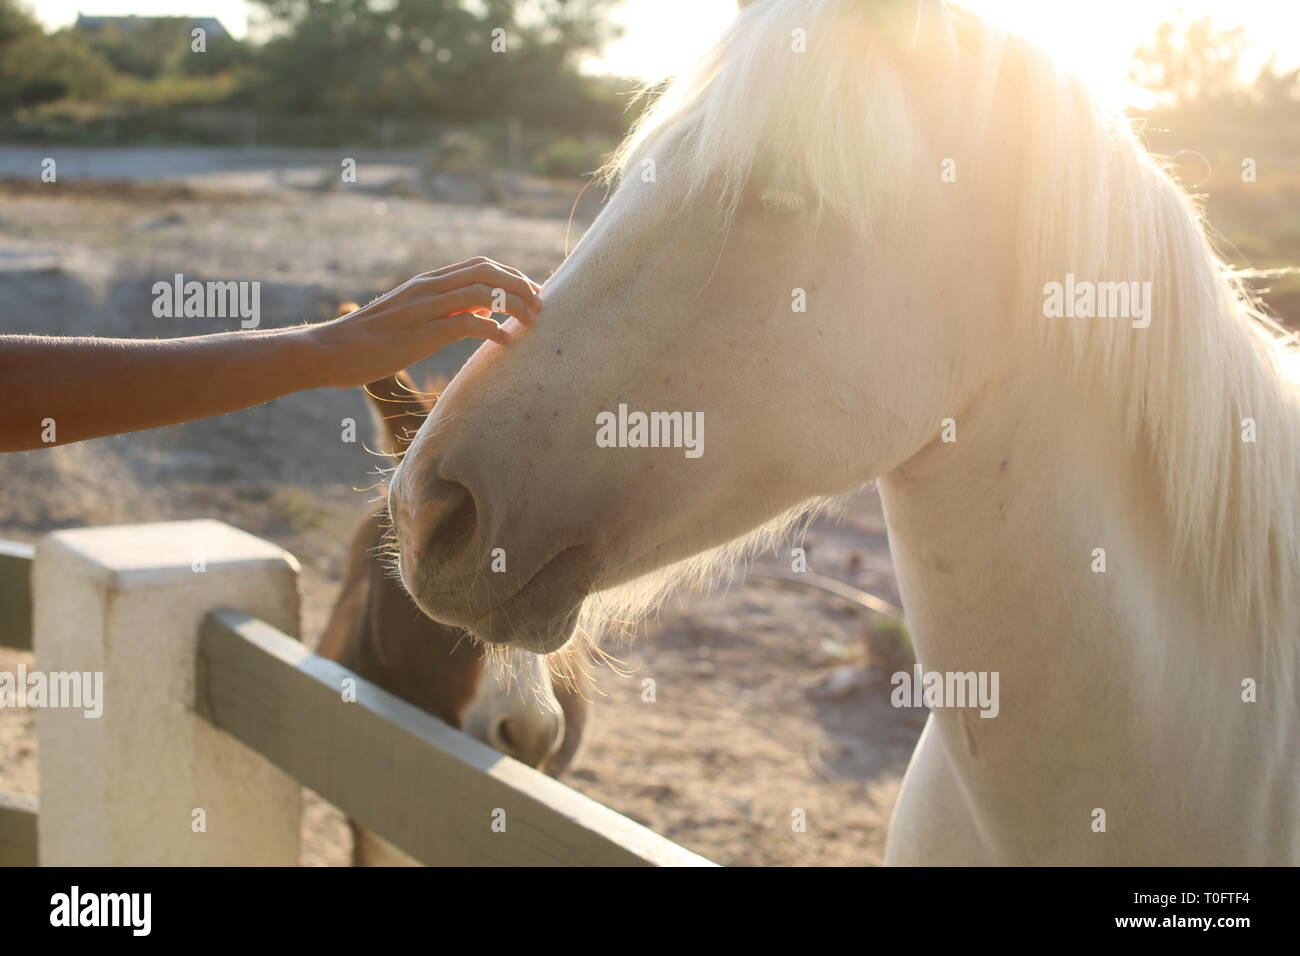 Close up of hand stroking a beautiful white horse's nose with a donkey in background at sunset Stock Photo